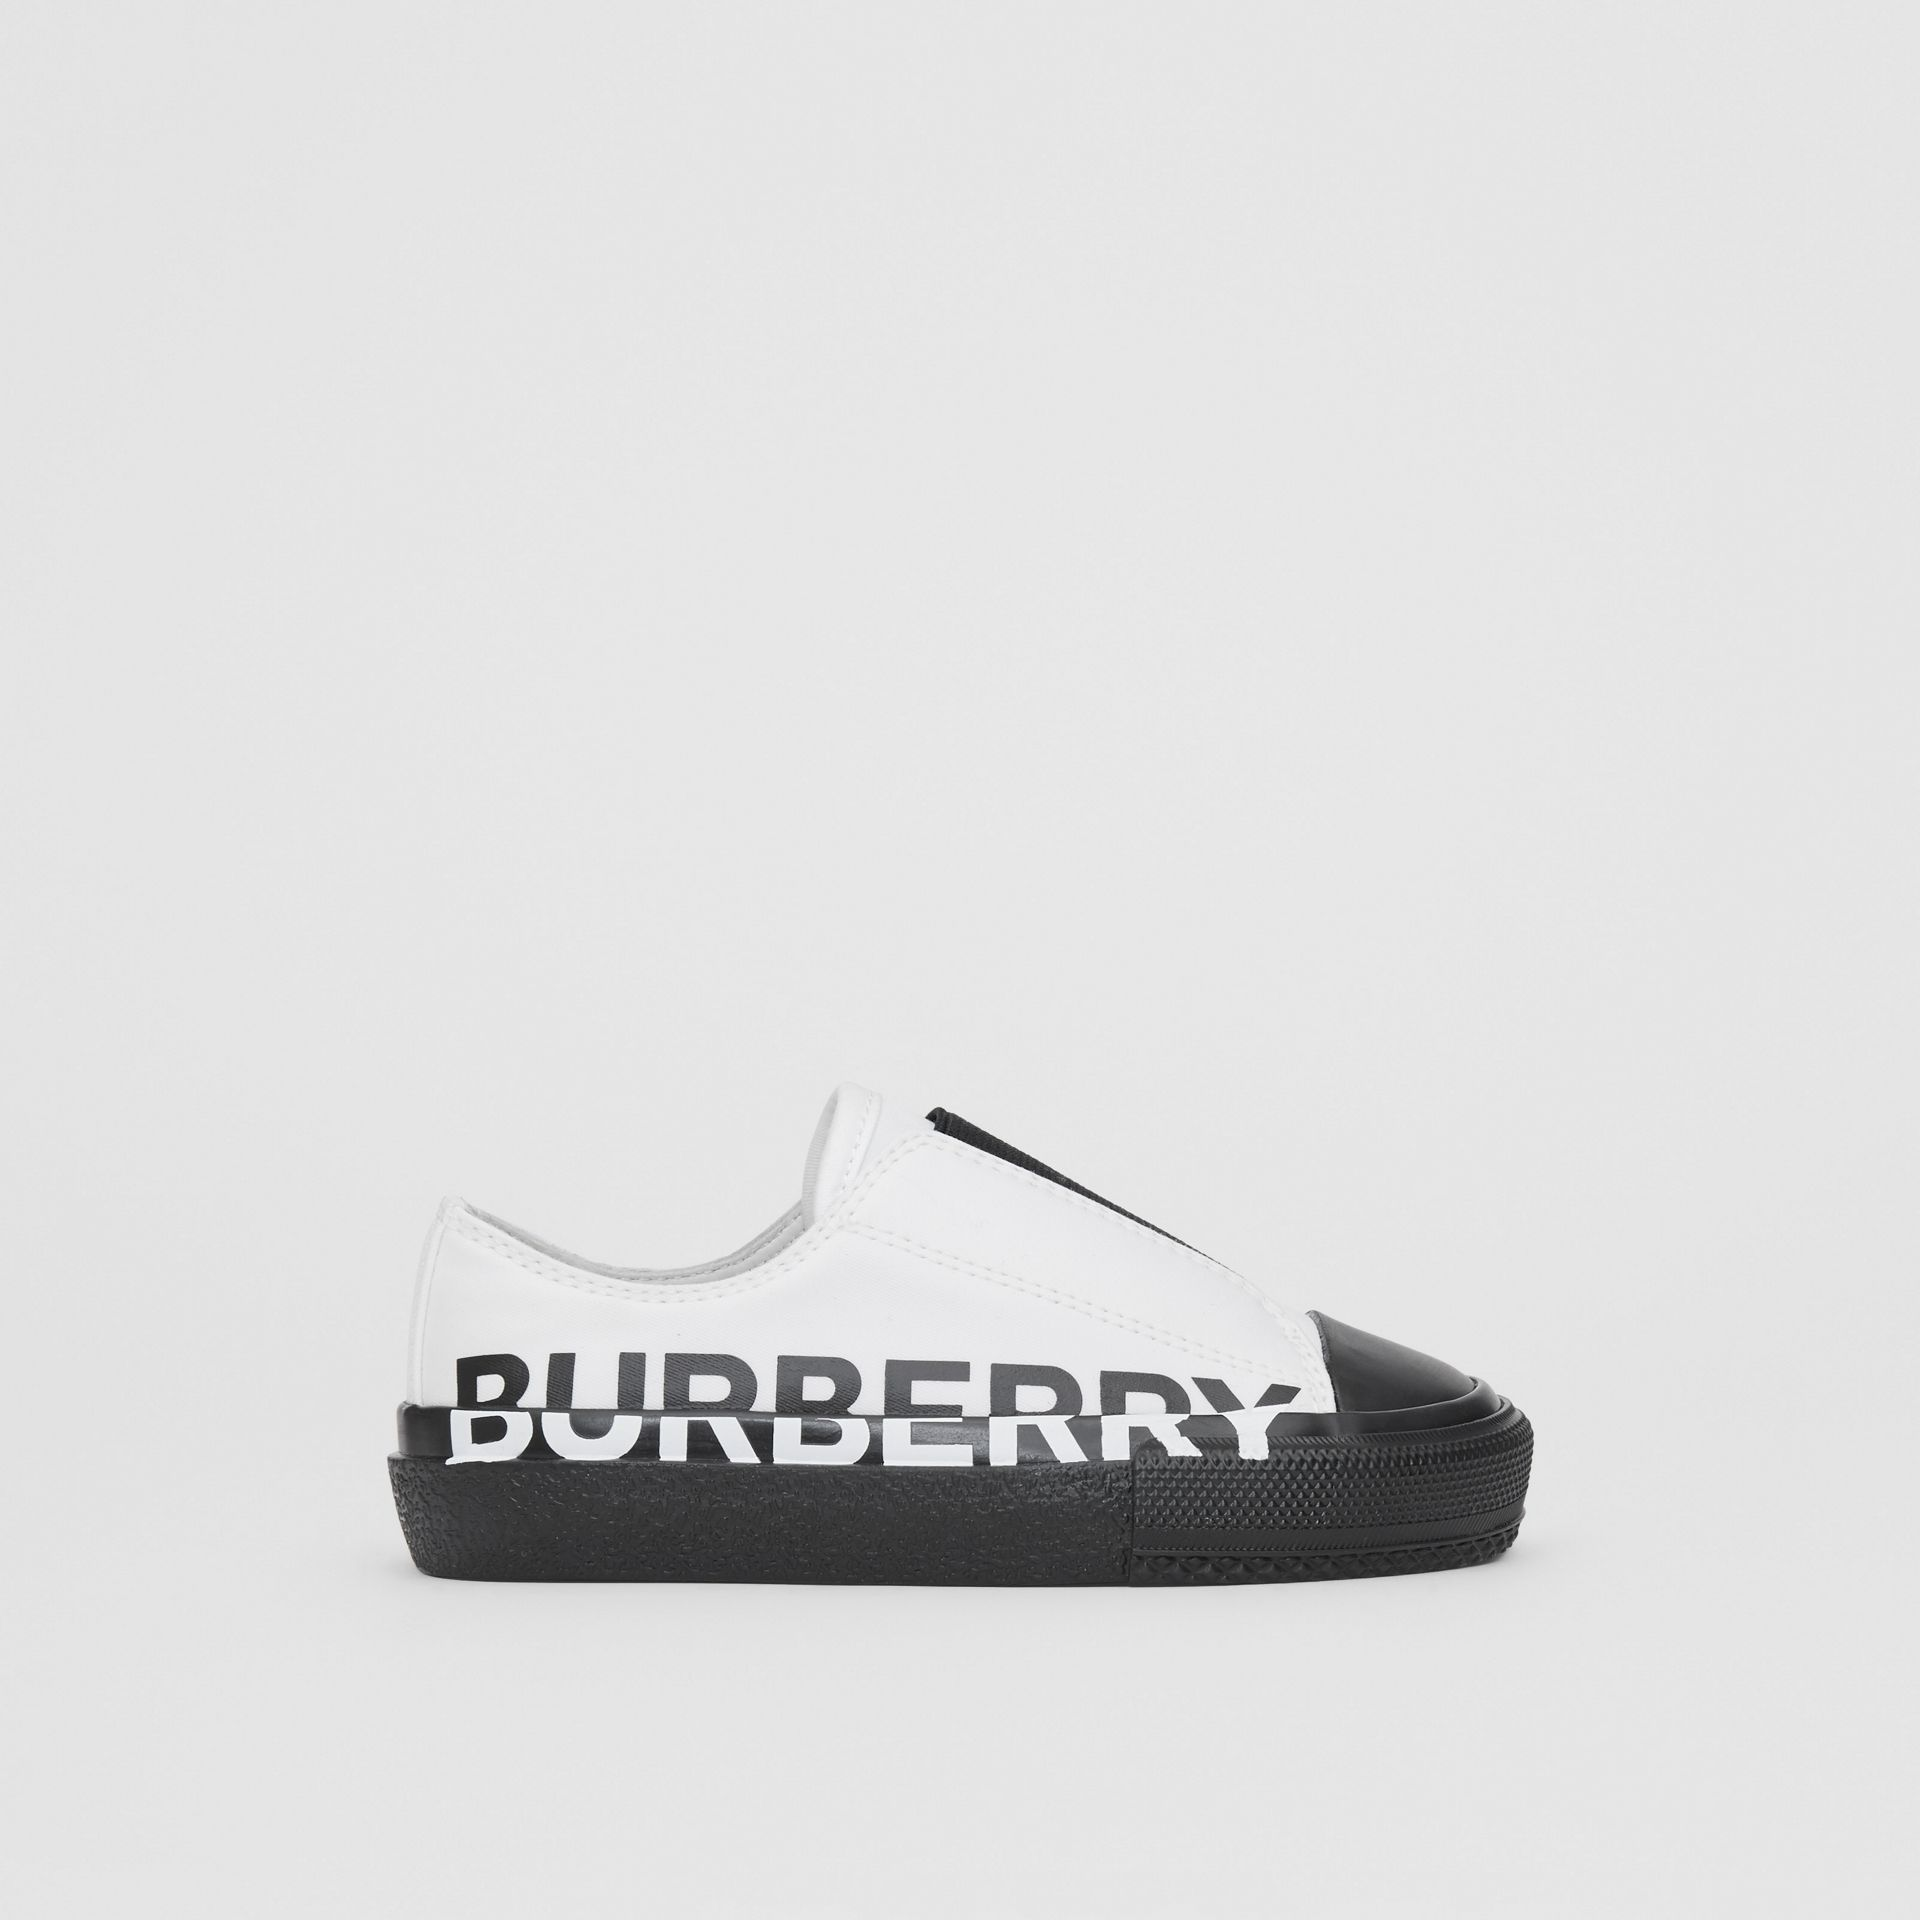 Logo Print Two-tone Cotton Gabardine Slip-on Sneakers in Optic White/black - Children | Burberry - gallery image 3